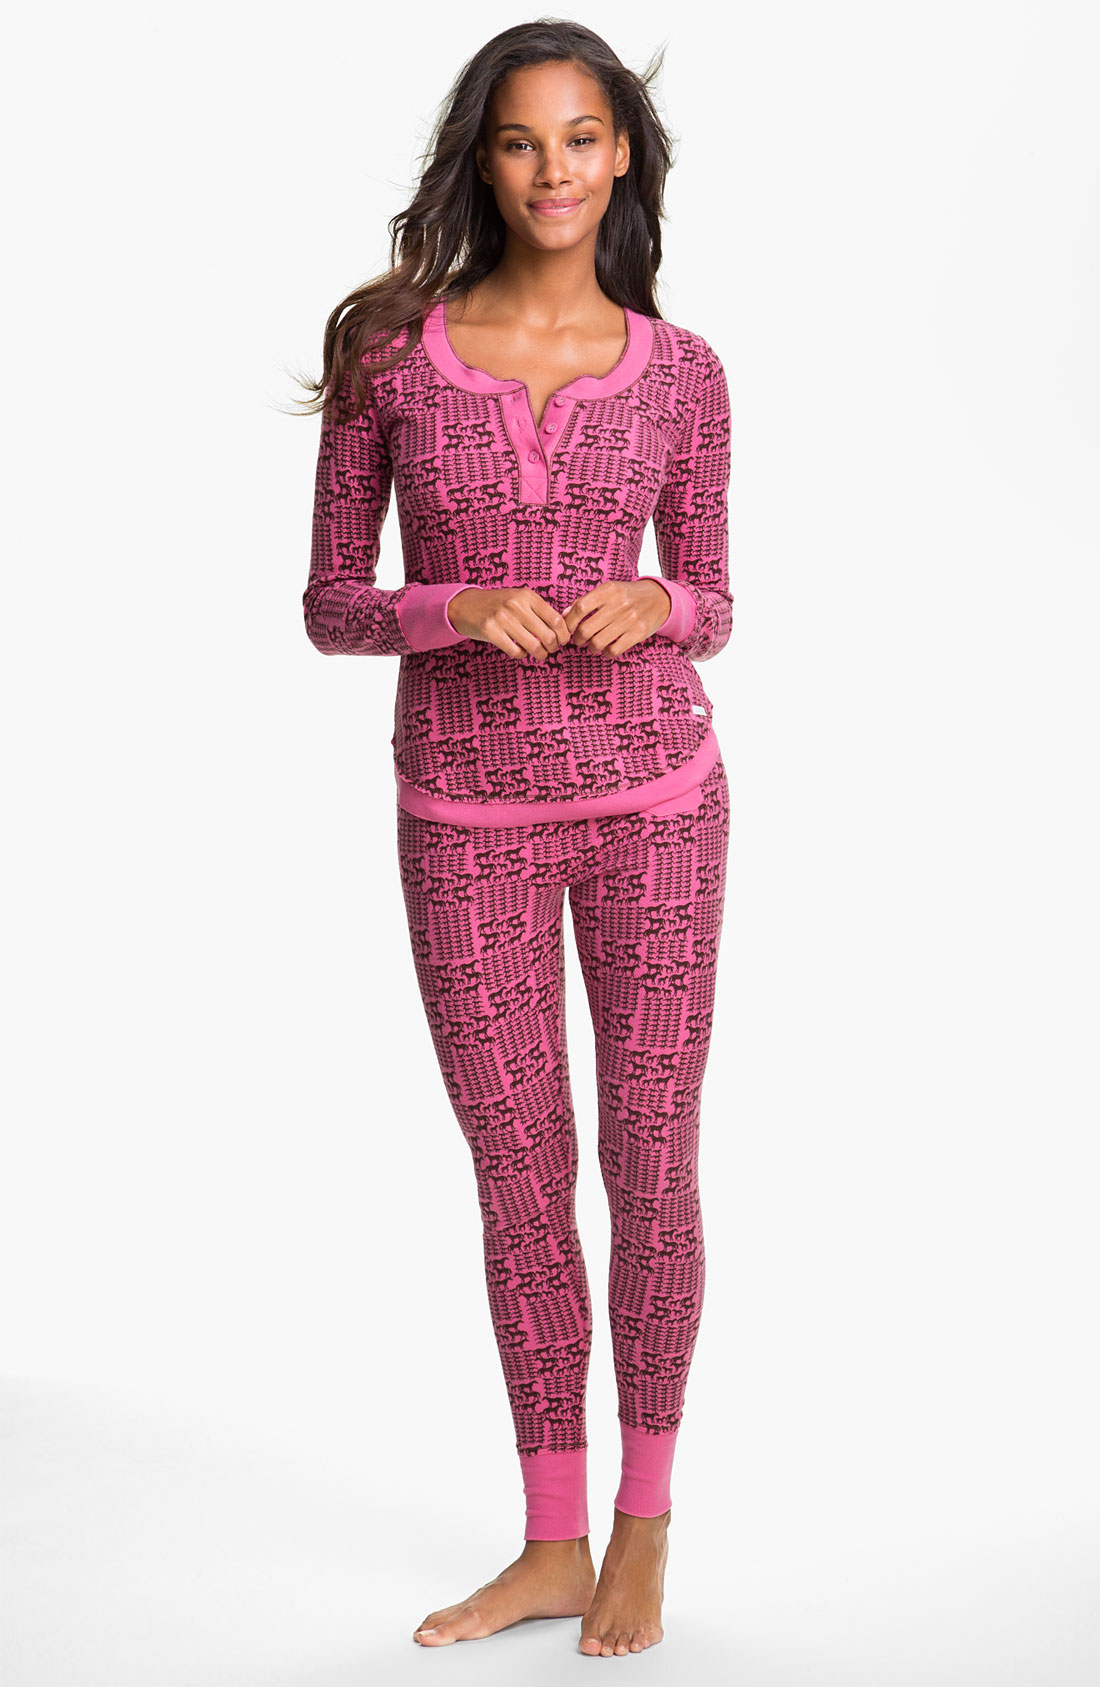 See all results for womens thermal pajamas. Tommy Hilfiger. Women's Long Sleeve Thermal Pajama Set Pj, from $ 20 10 Prime. out of 5 stars Leveret. Women's Pajamas Fitted Printed Owl 2 Piece Pjs Set % Cotton Sleep Pants Sleepwear (XSmall-XLarge) from $ .